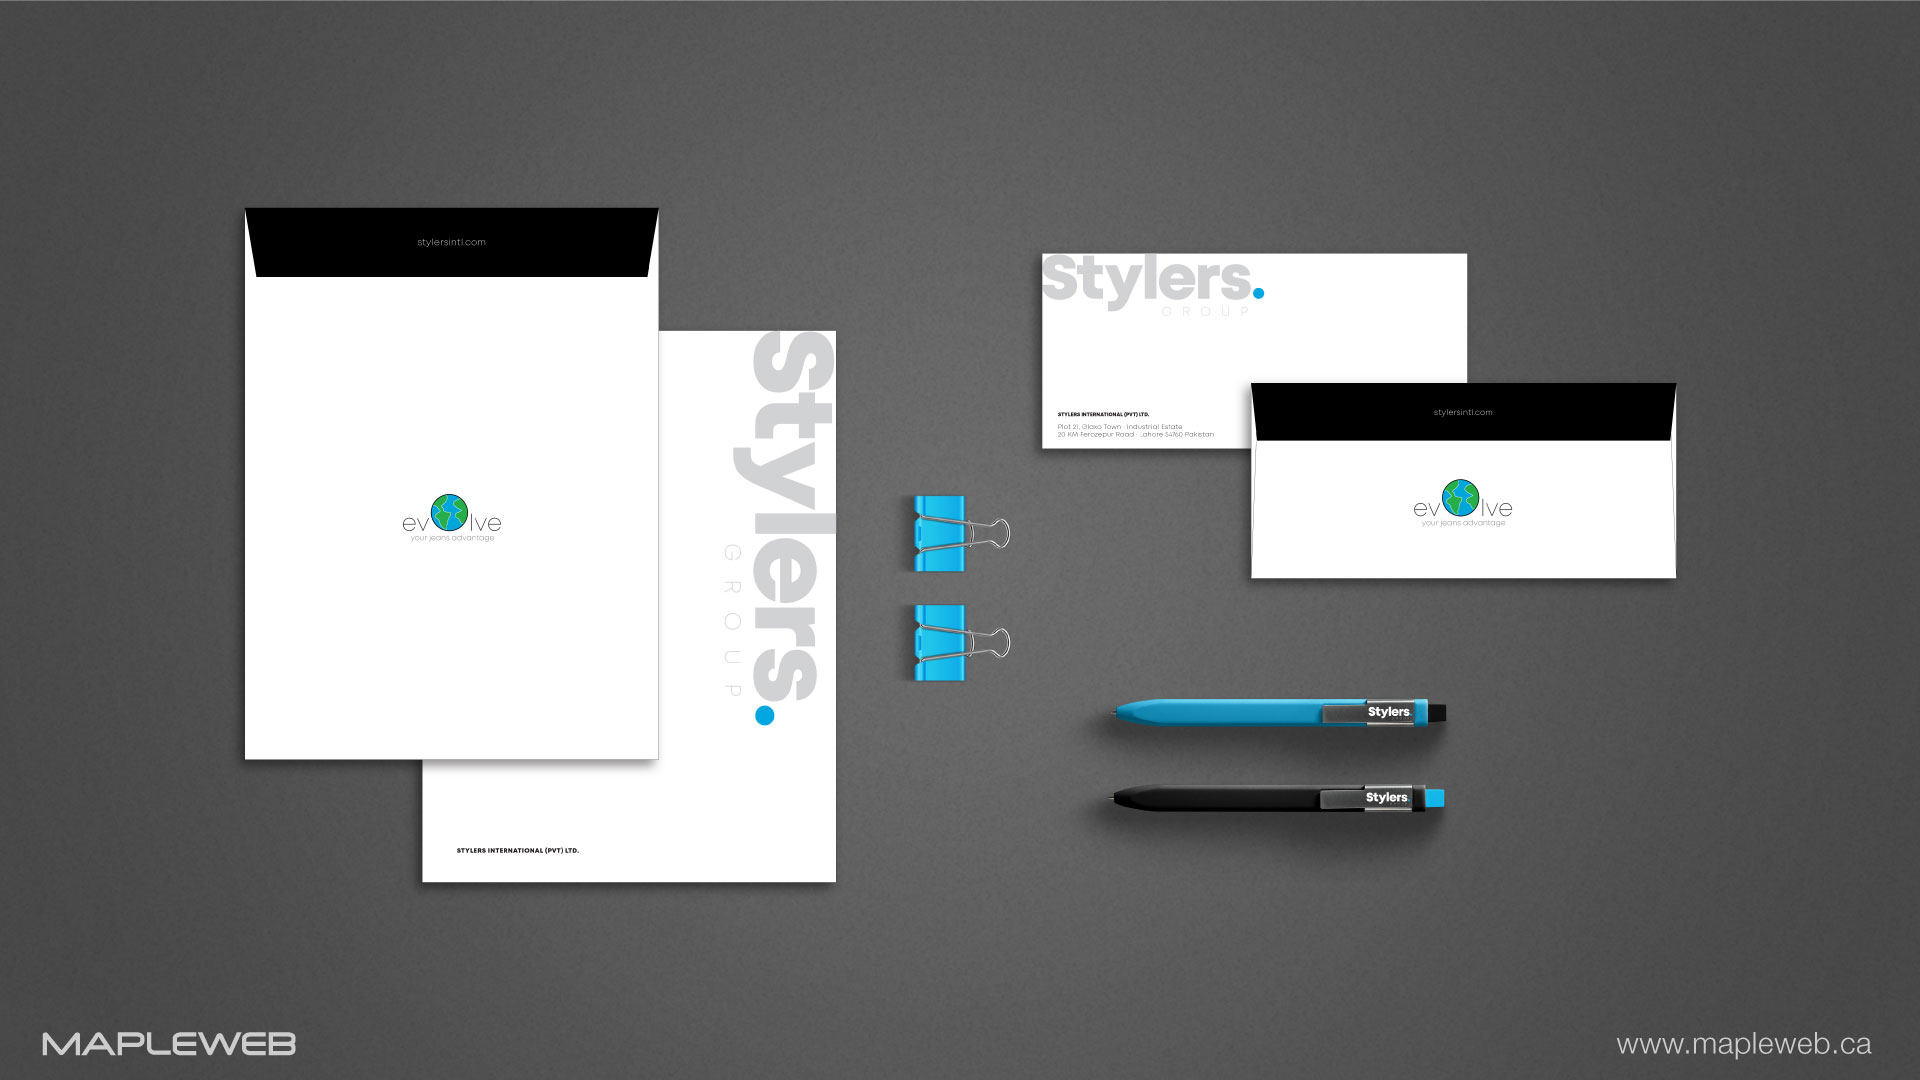 stylers-group-brand-logo-design-by-mapleweb-vancouver-canada-stationery-mock